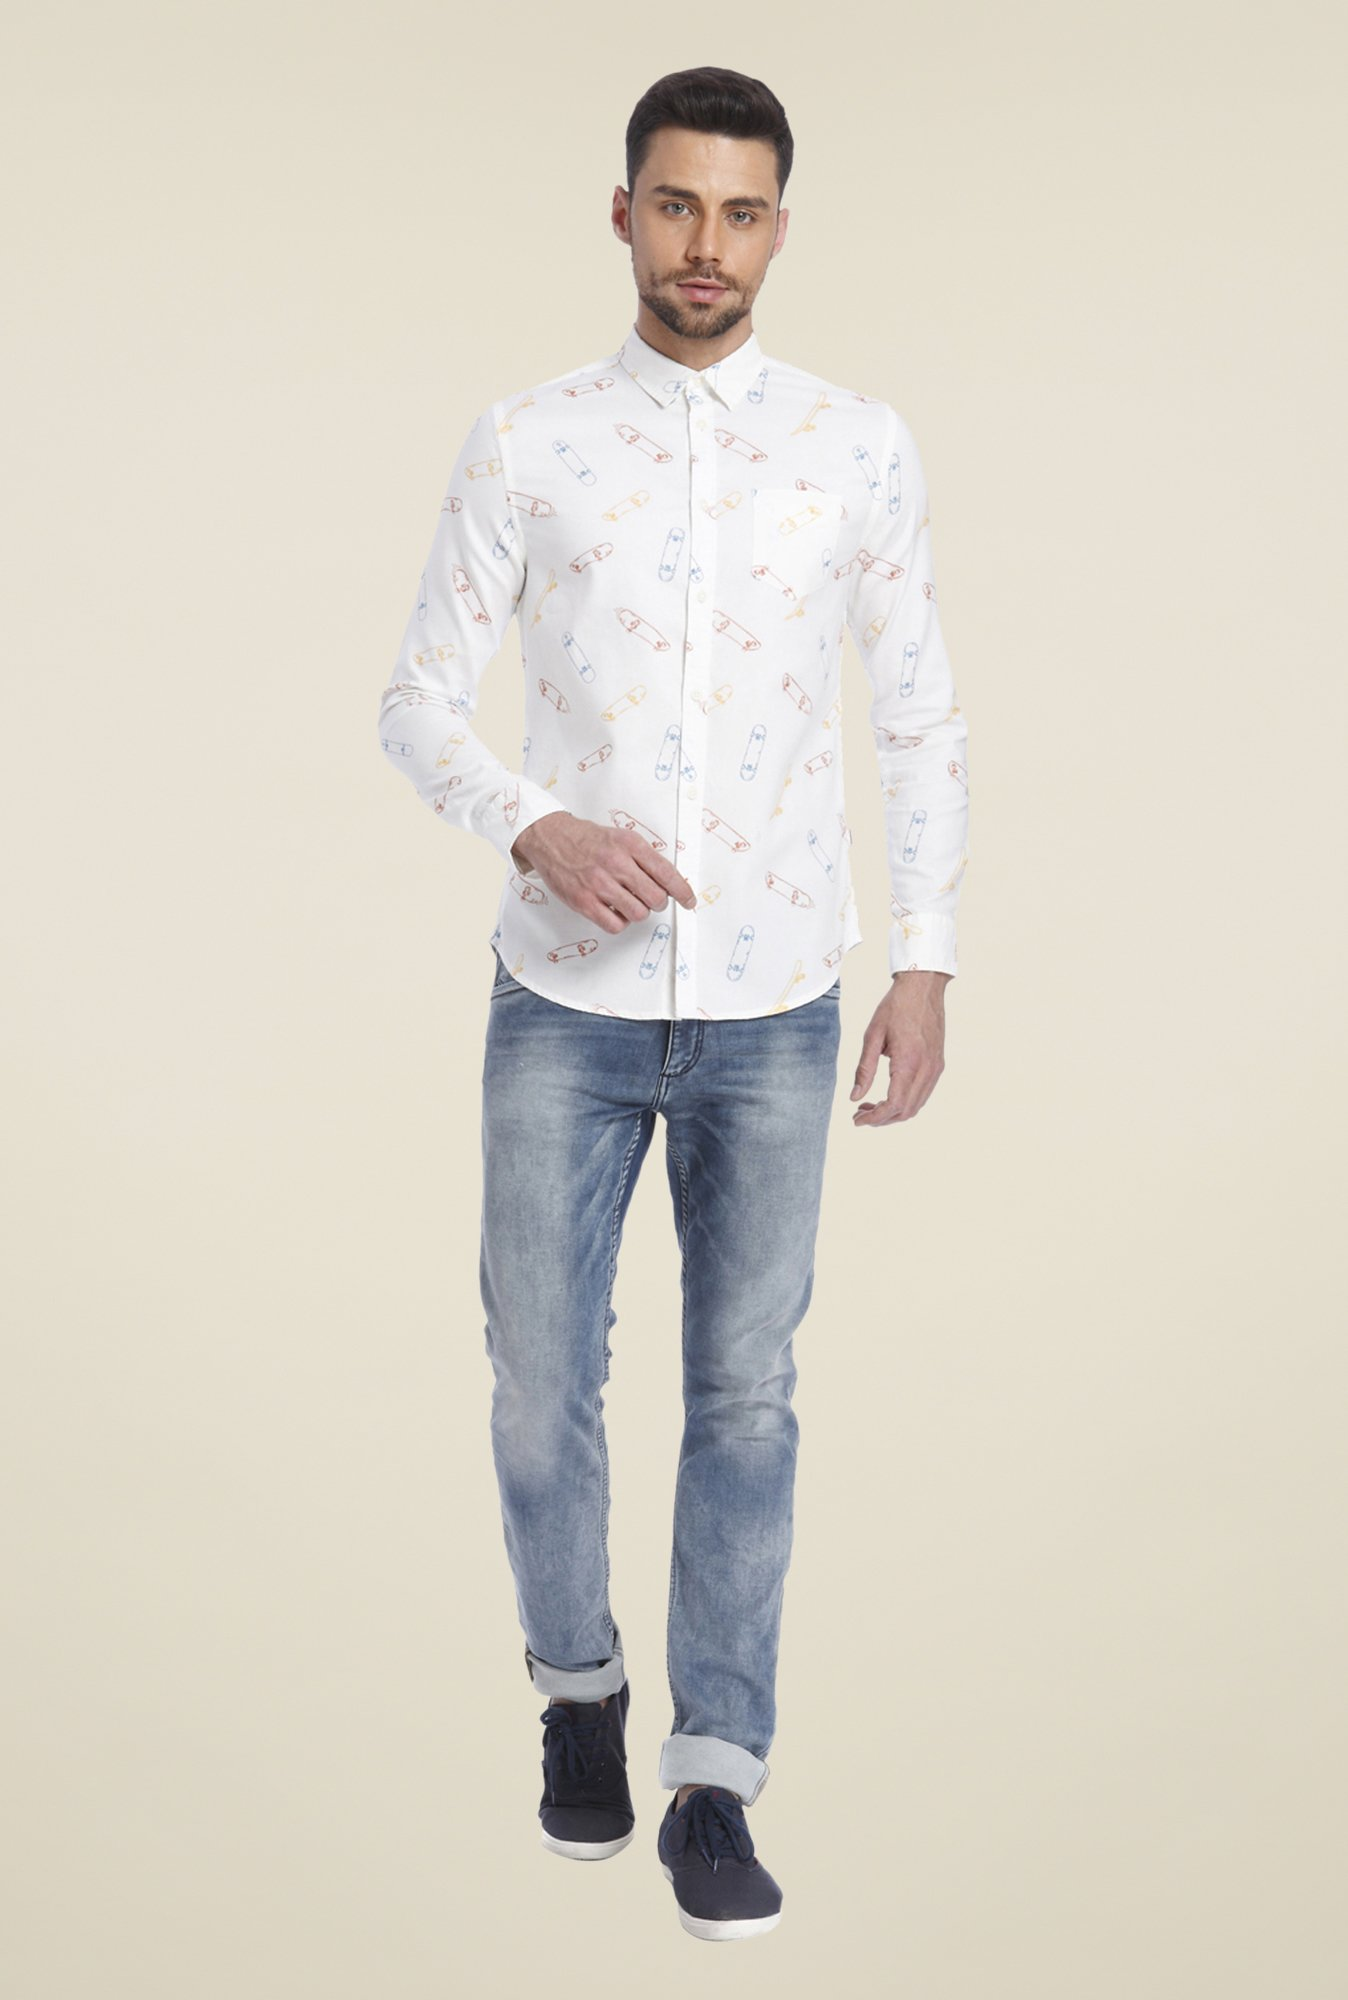 Jack & Jones White Printed Shirt